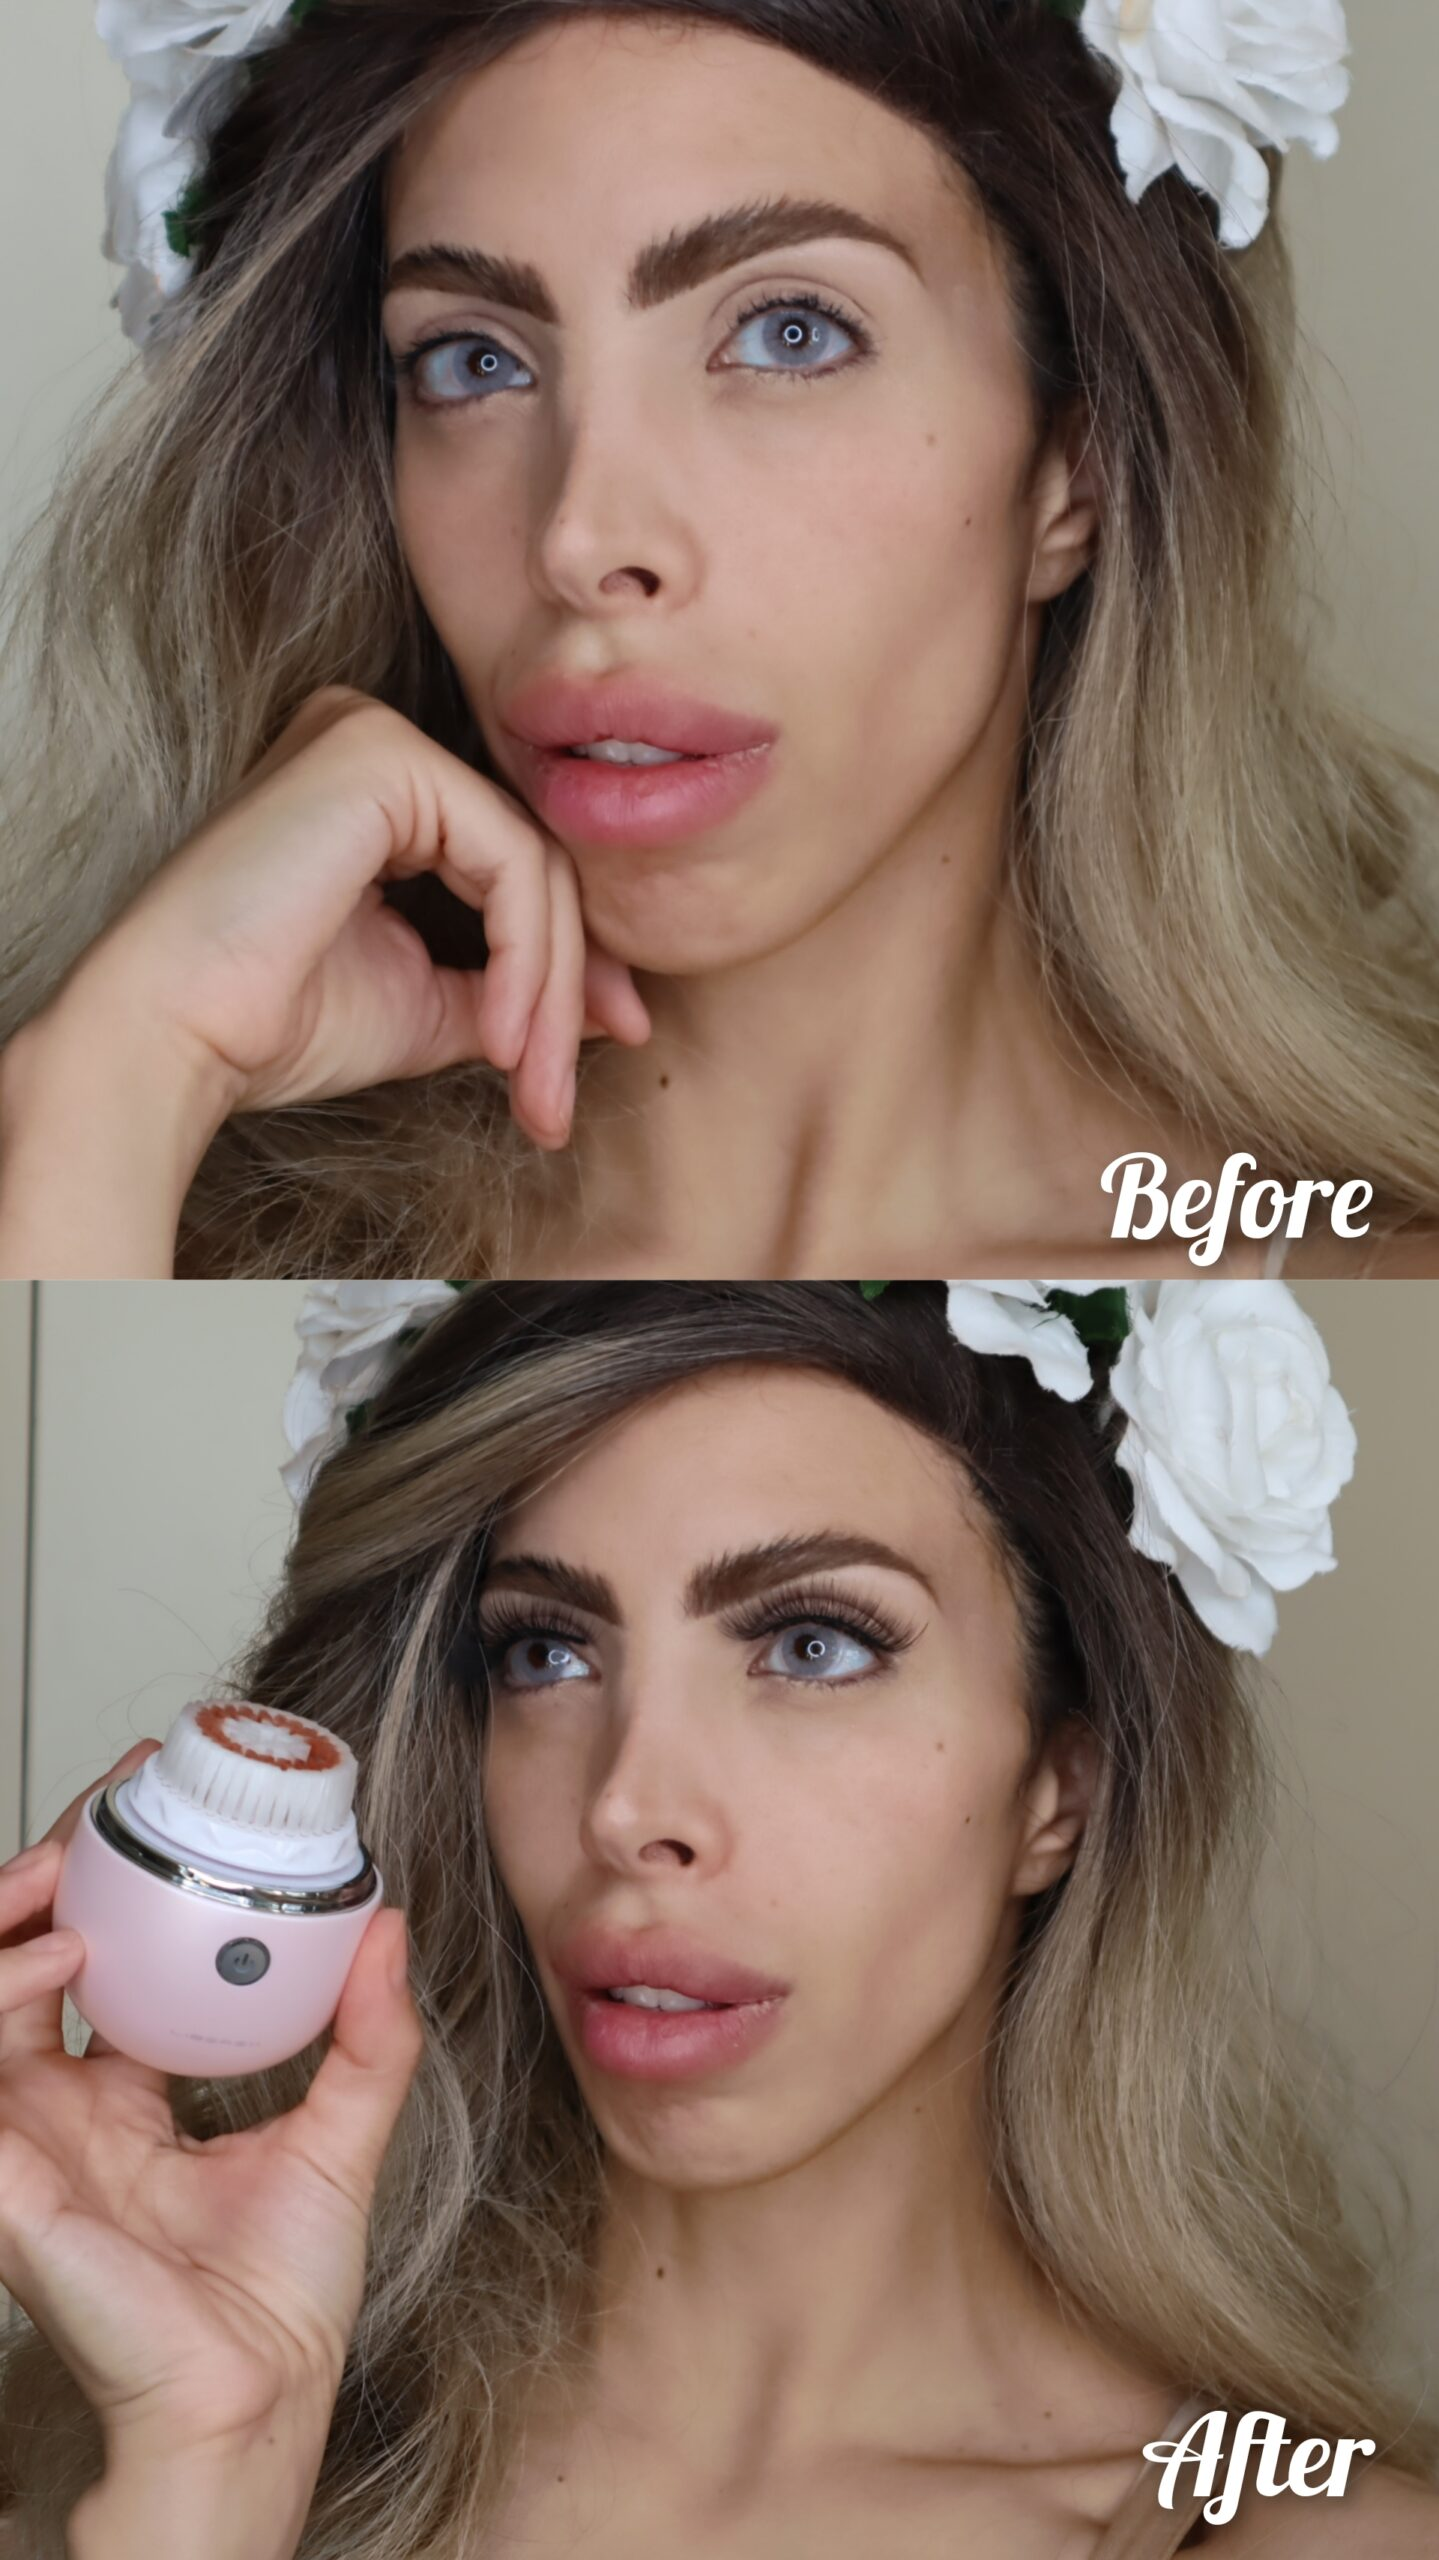 Before and After using the Liberex Egg Vibrating Facial Cleansing Brush